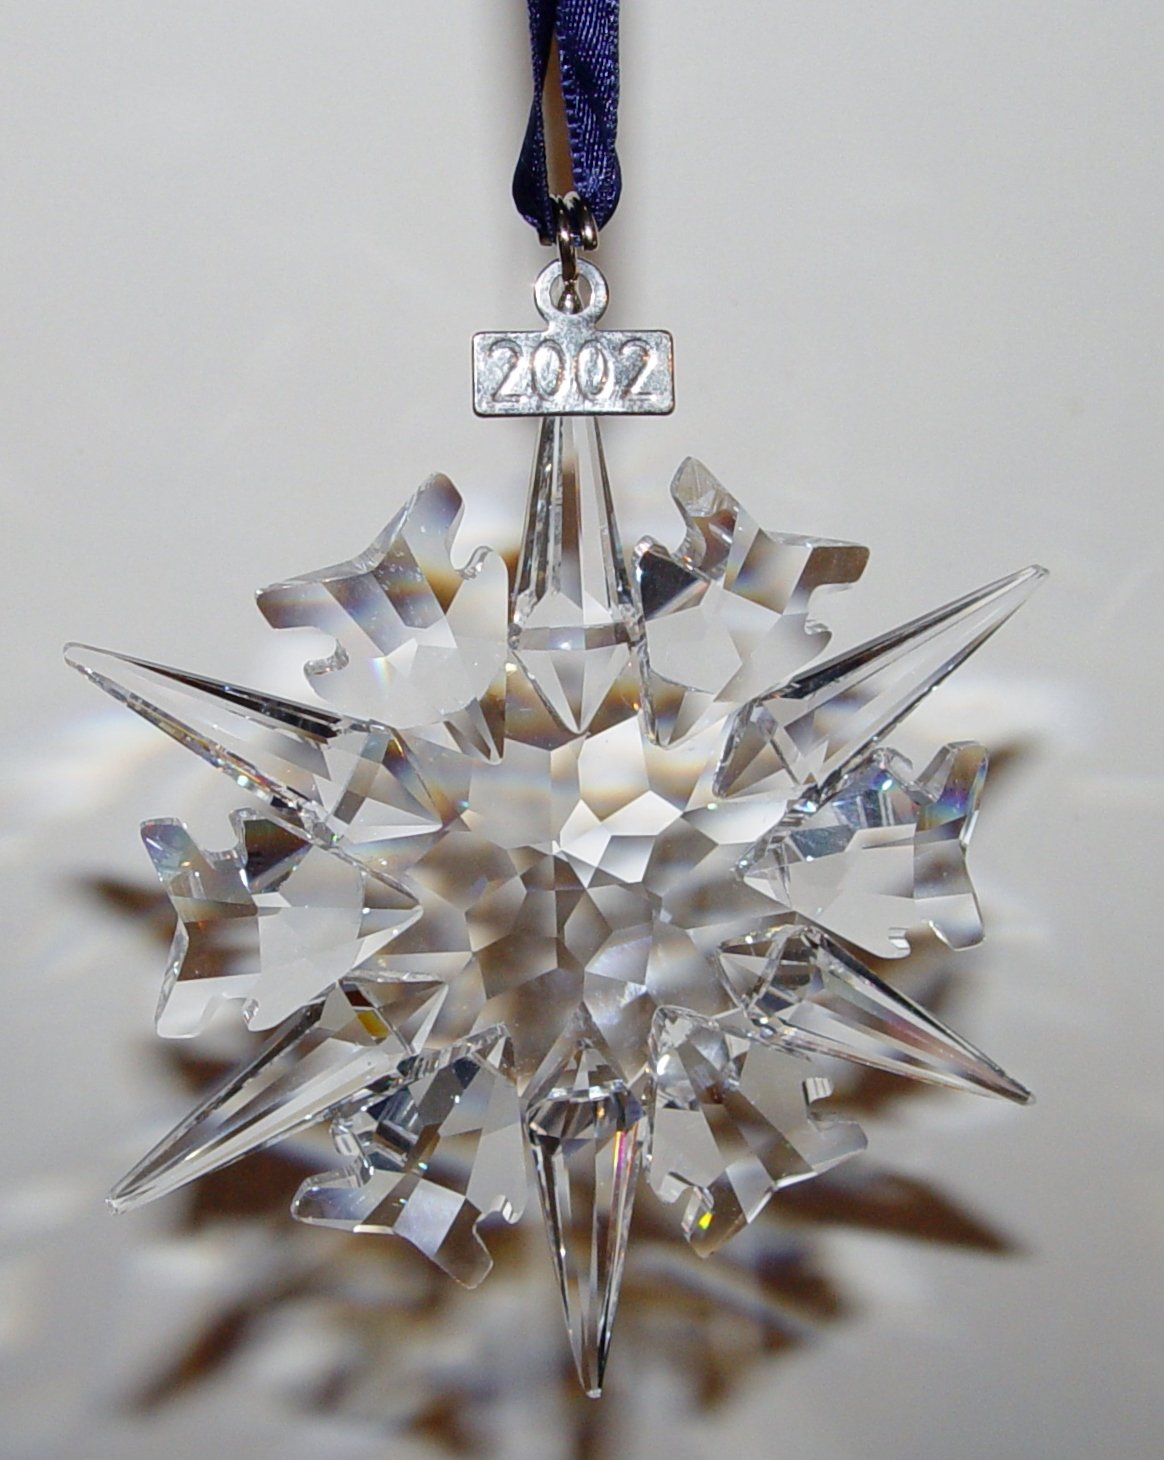 Swarovski christmas ornament 2004 - Amazon Com Swarovski Christmas Ornament 2002 Limited Edition 288802 Home Kitchen